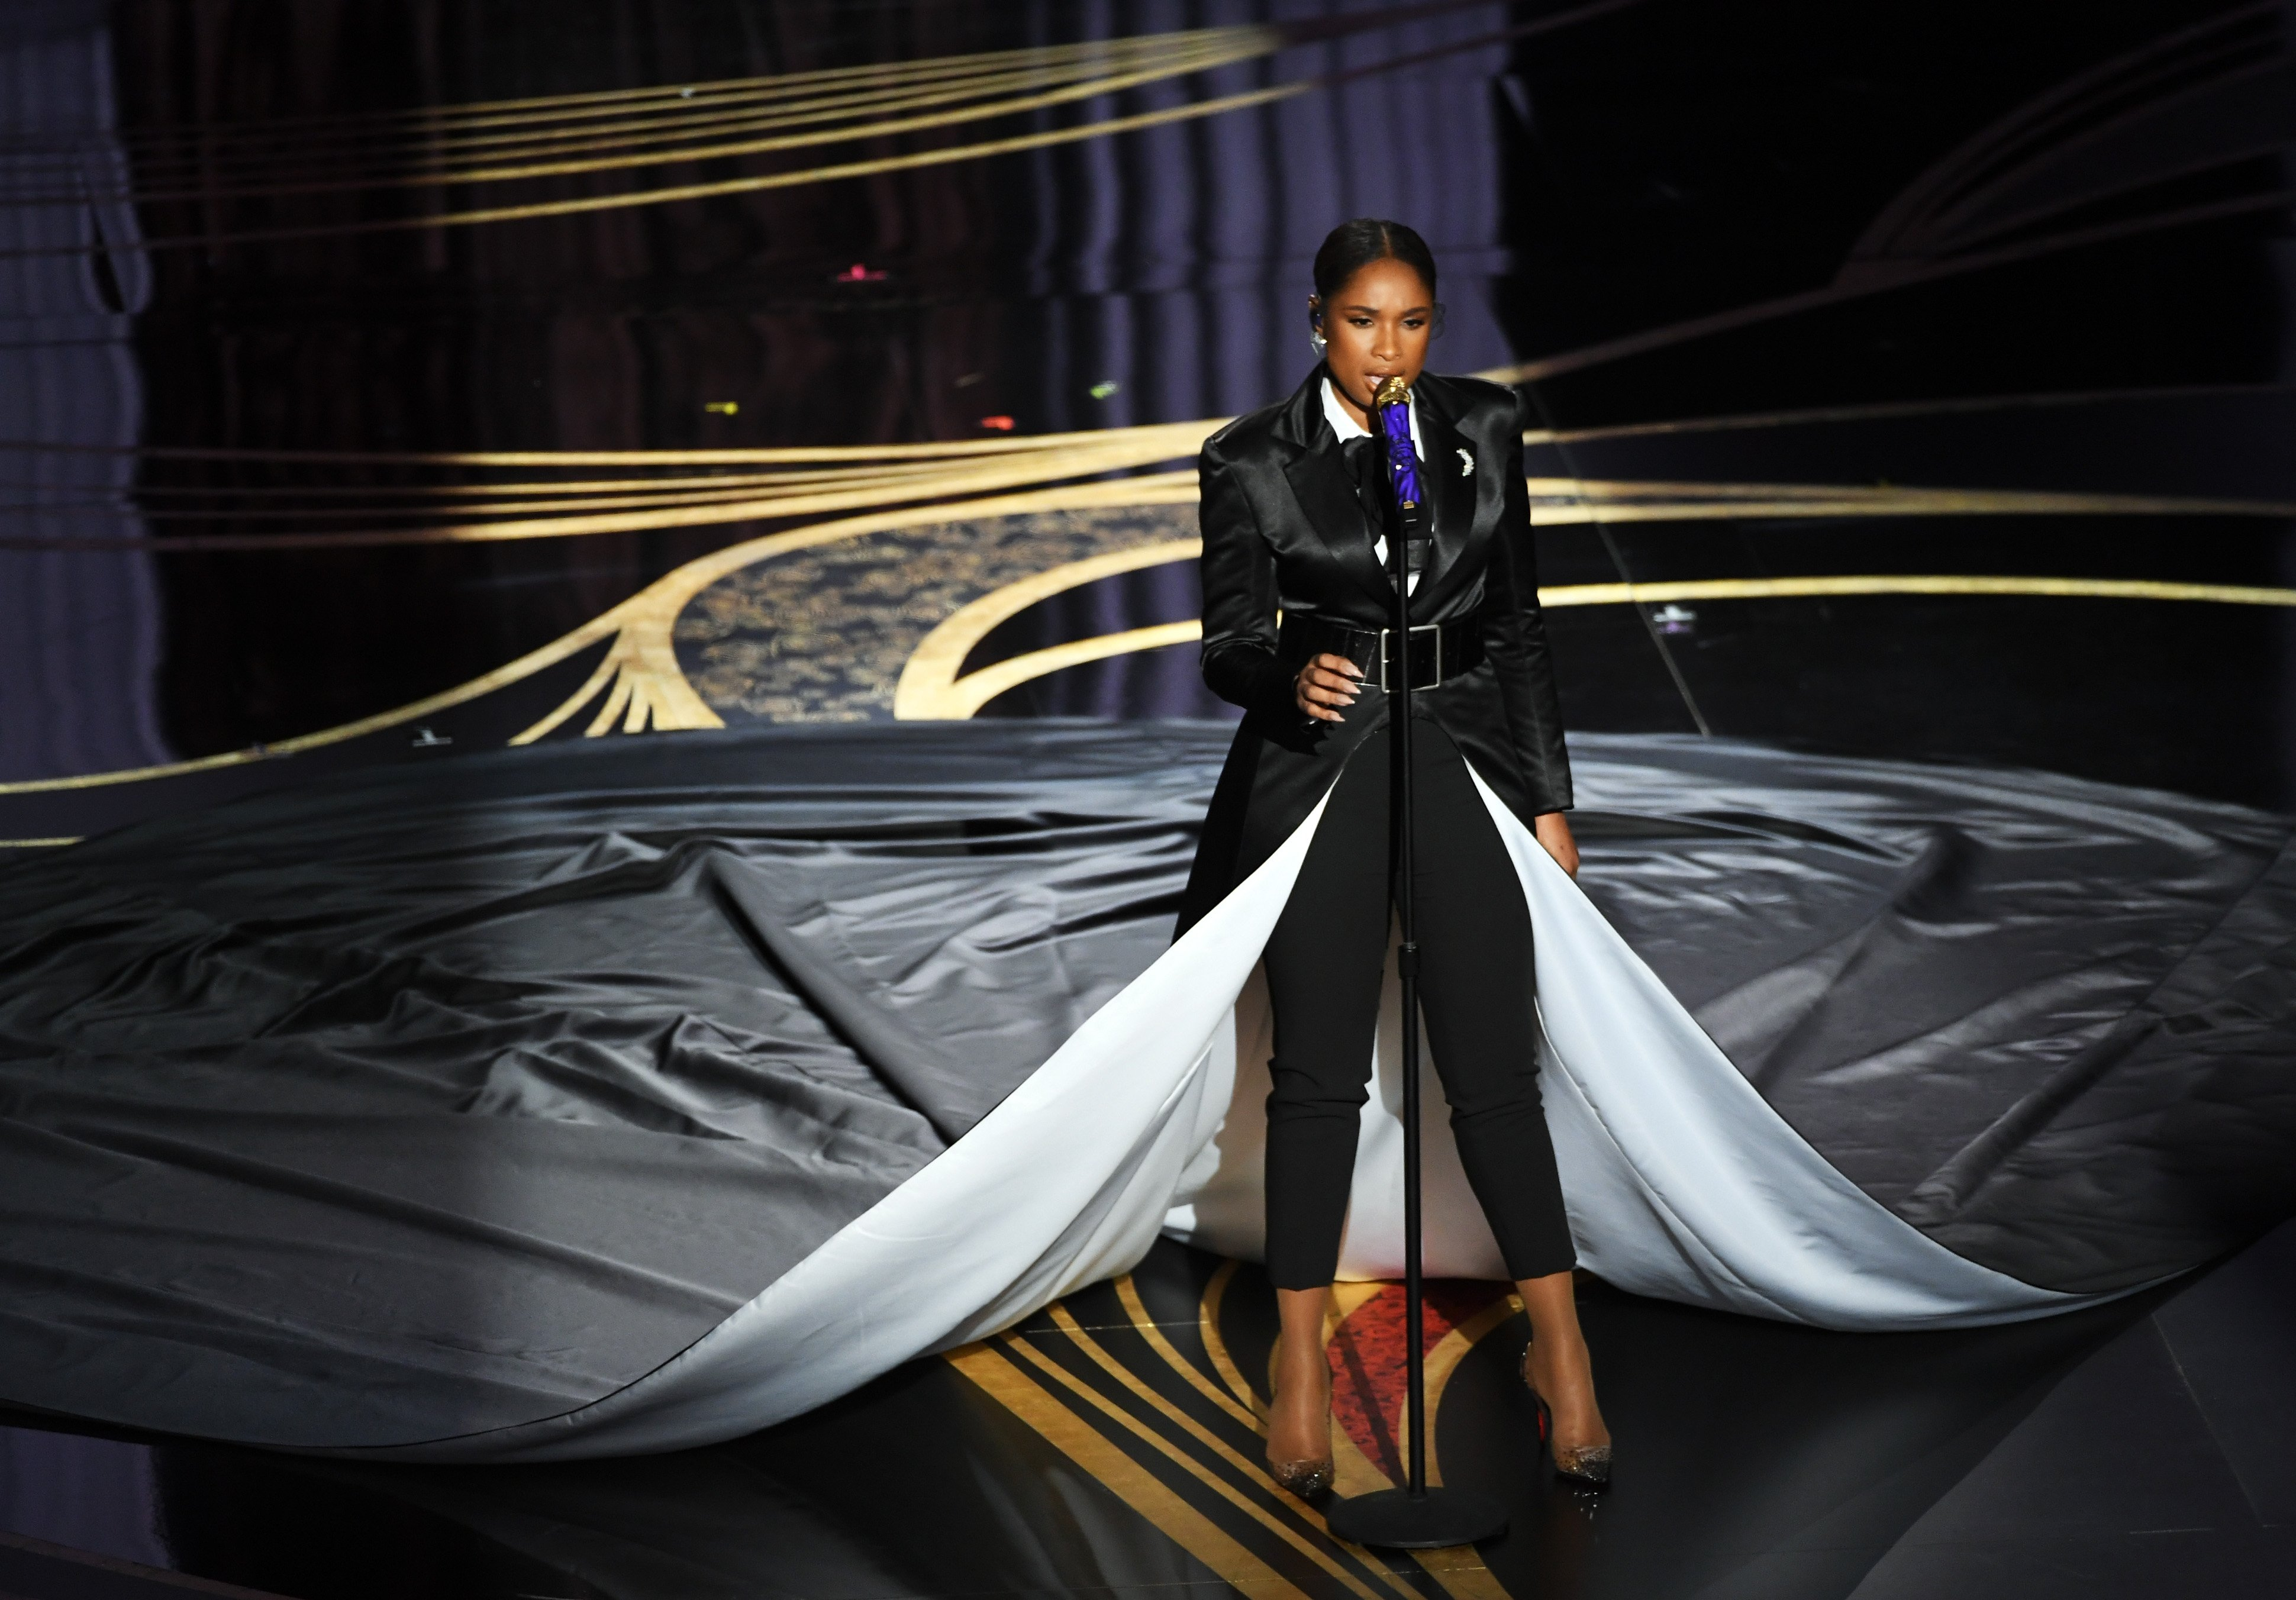 Jennifer Hudson performs onstage at the 91st Annual Academy Awards on Feb. 24, 2019 in California | Photo: Getty Images